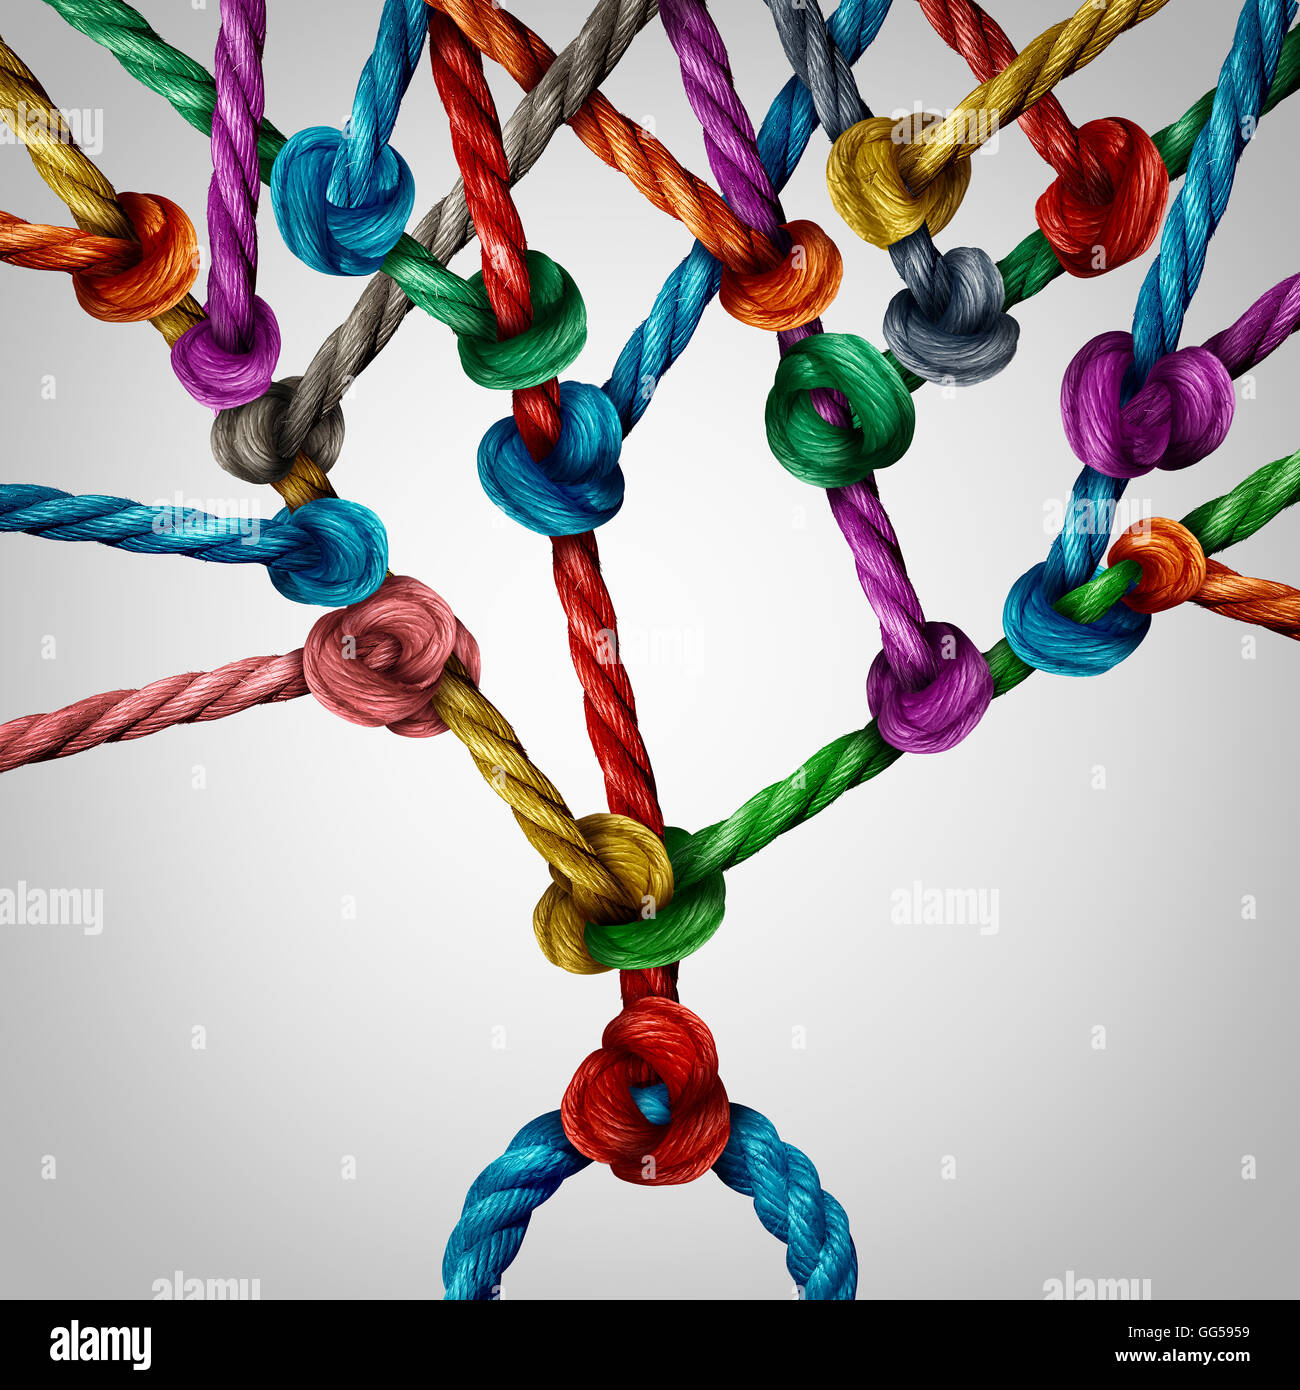 Network tree connection as a group of connected ropes tied together as a growth branching structure. - Stock Image